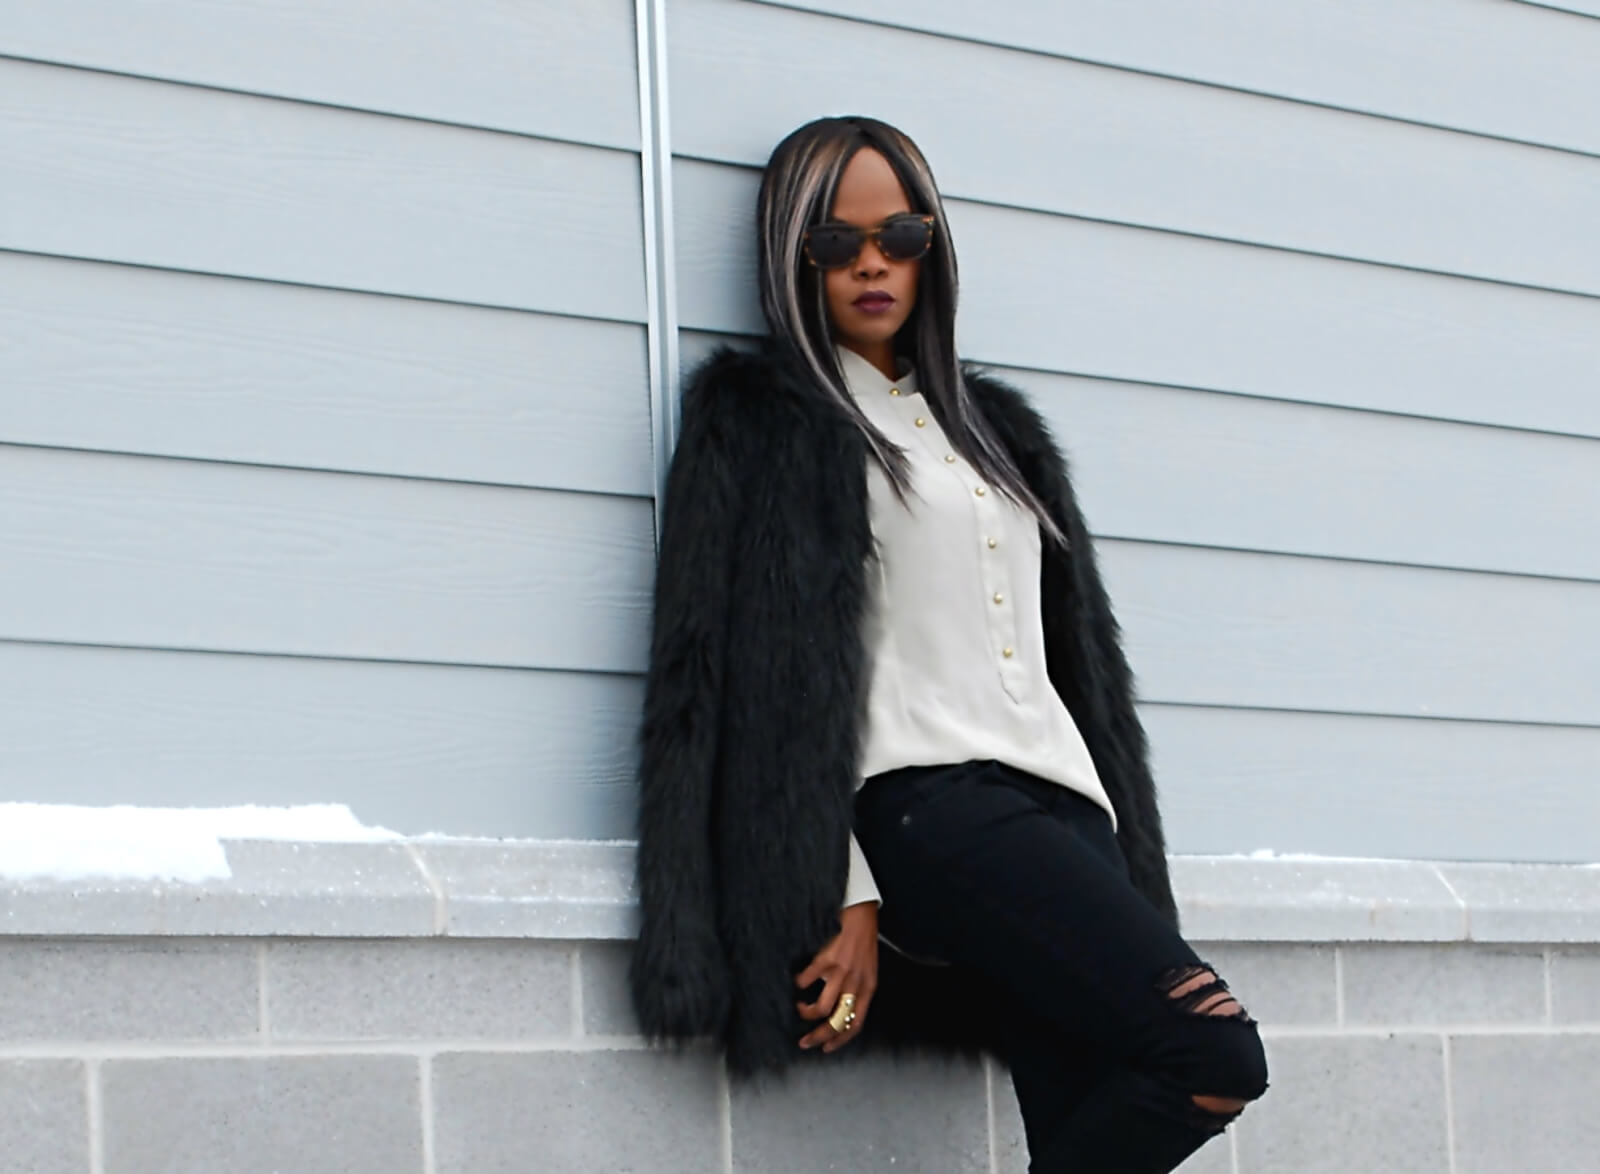 Black faux fur coat, faux fur, black faux fur jacket, black ripped denim, current/elliott denim, button up top, button down top, winnipeg fashion blogger, fashion blogger style, african blogger